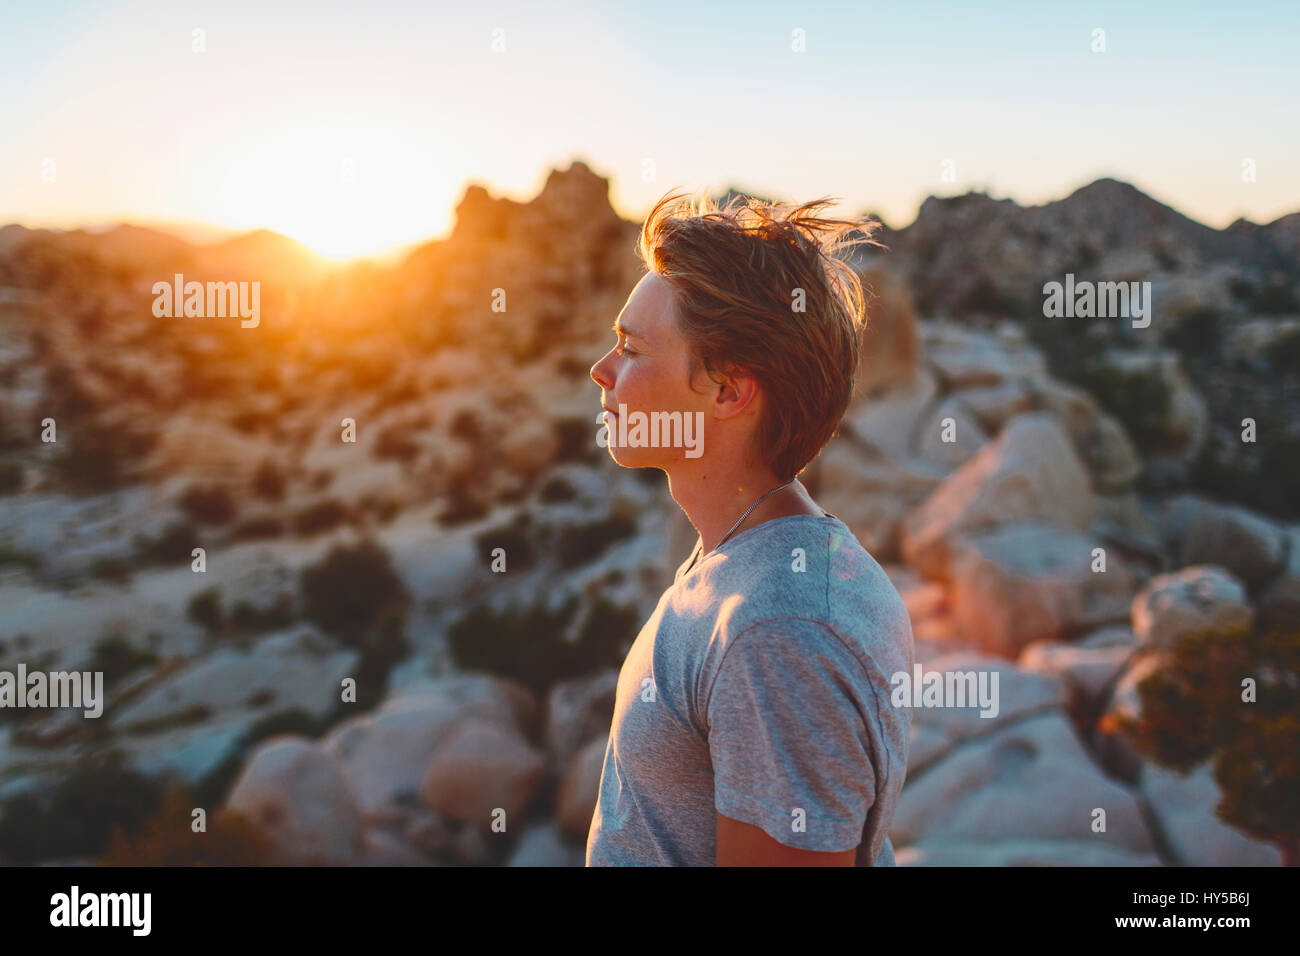 USA, California, Joshua Tree National Park, Young man contemplating at sunset - Stock Image